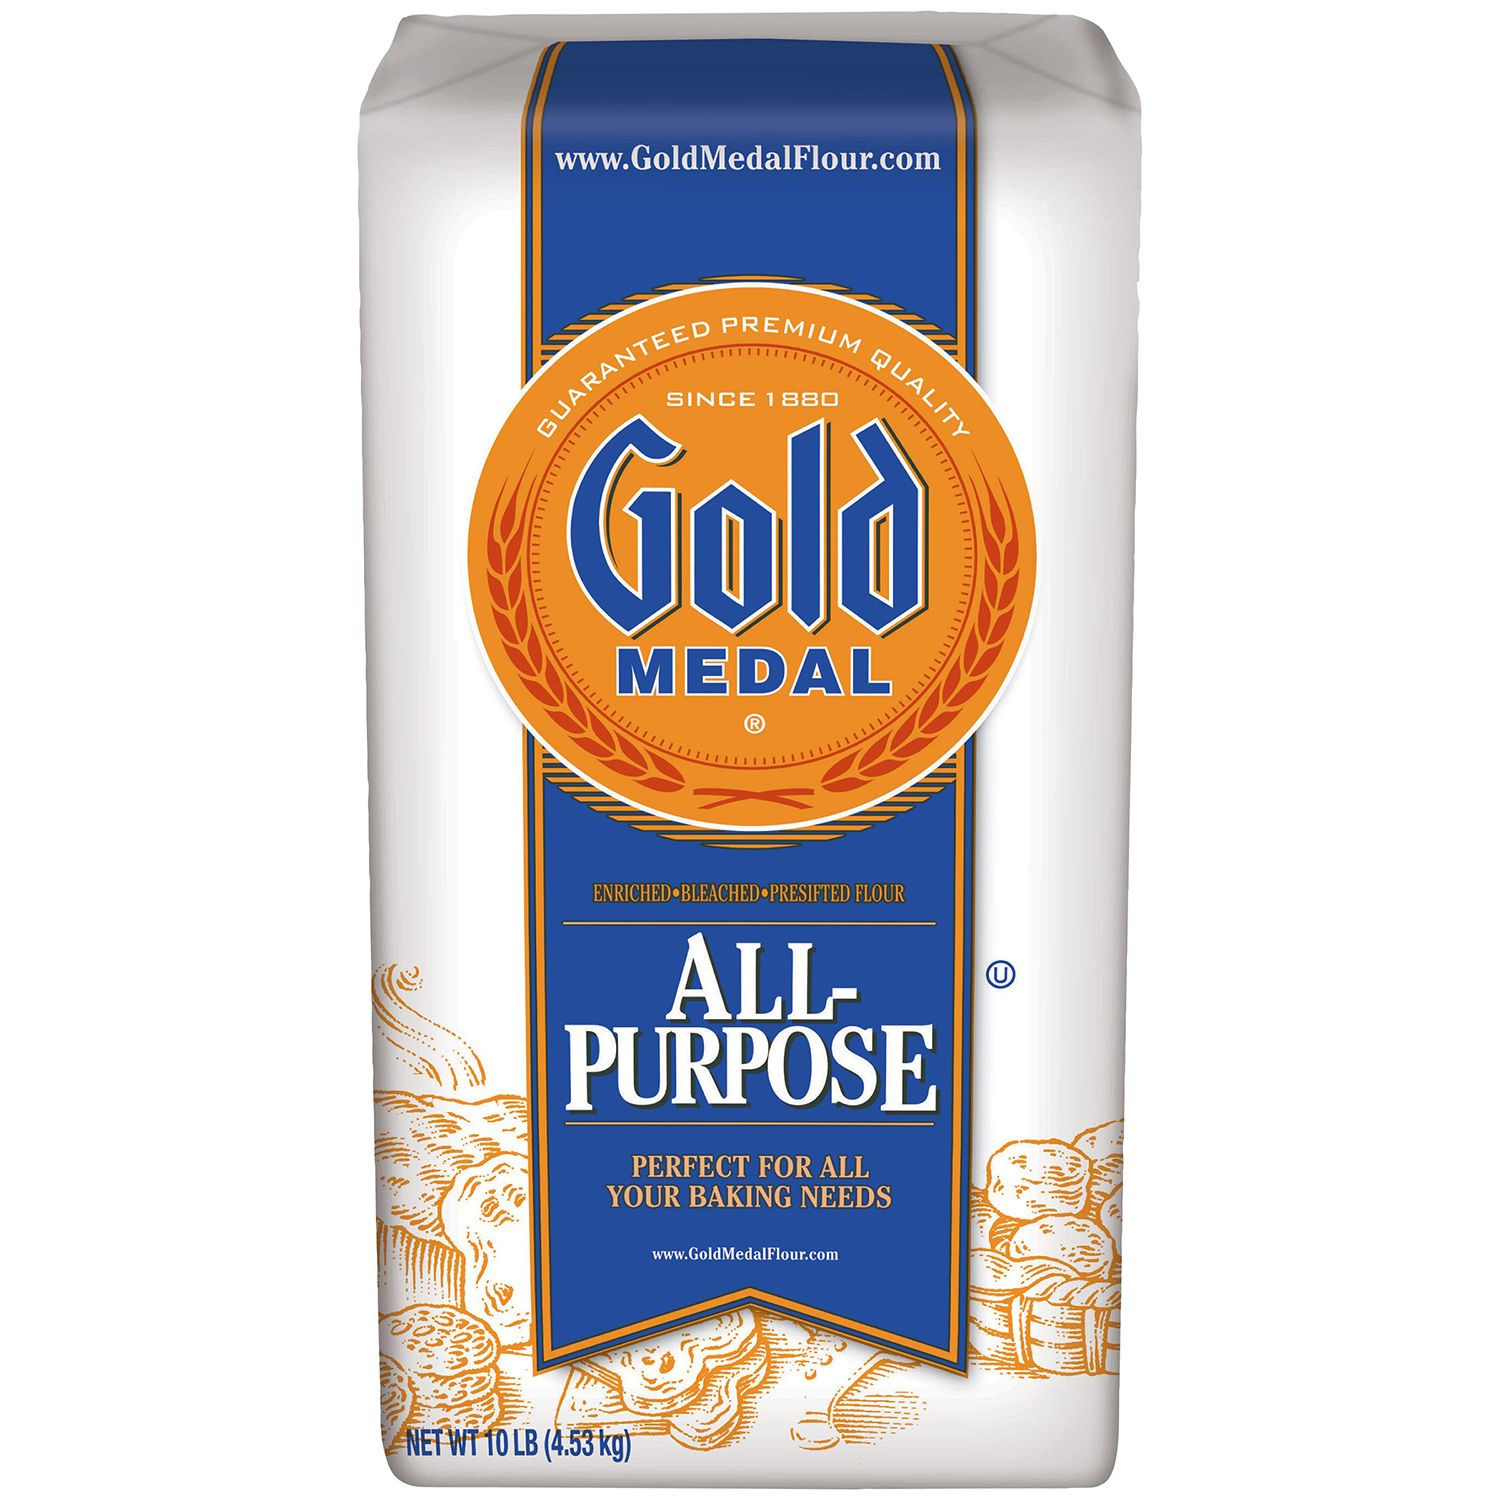 Gold Medal ALL Purpose Flour 10 LBS | eBay